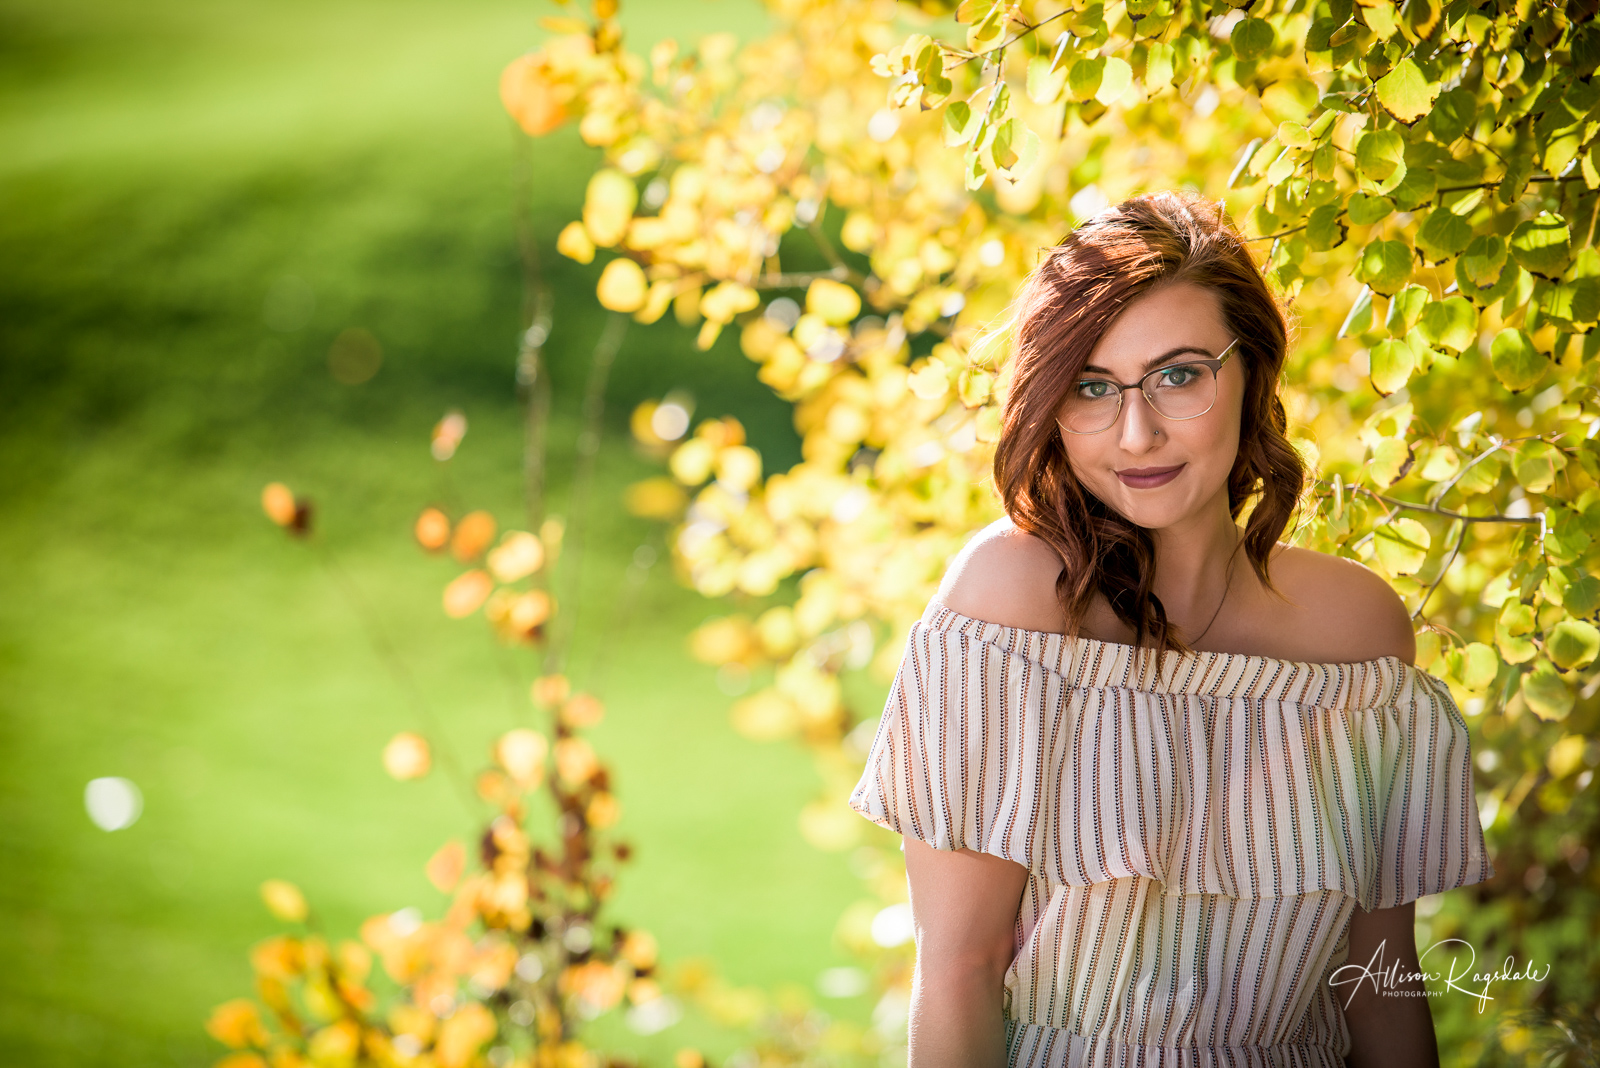 Durango Colorado High School Senior Pictures Photographed by Allison Ragsdale Photography. Durango Professional Photographers